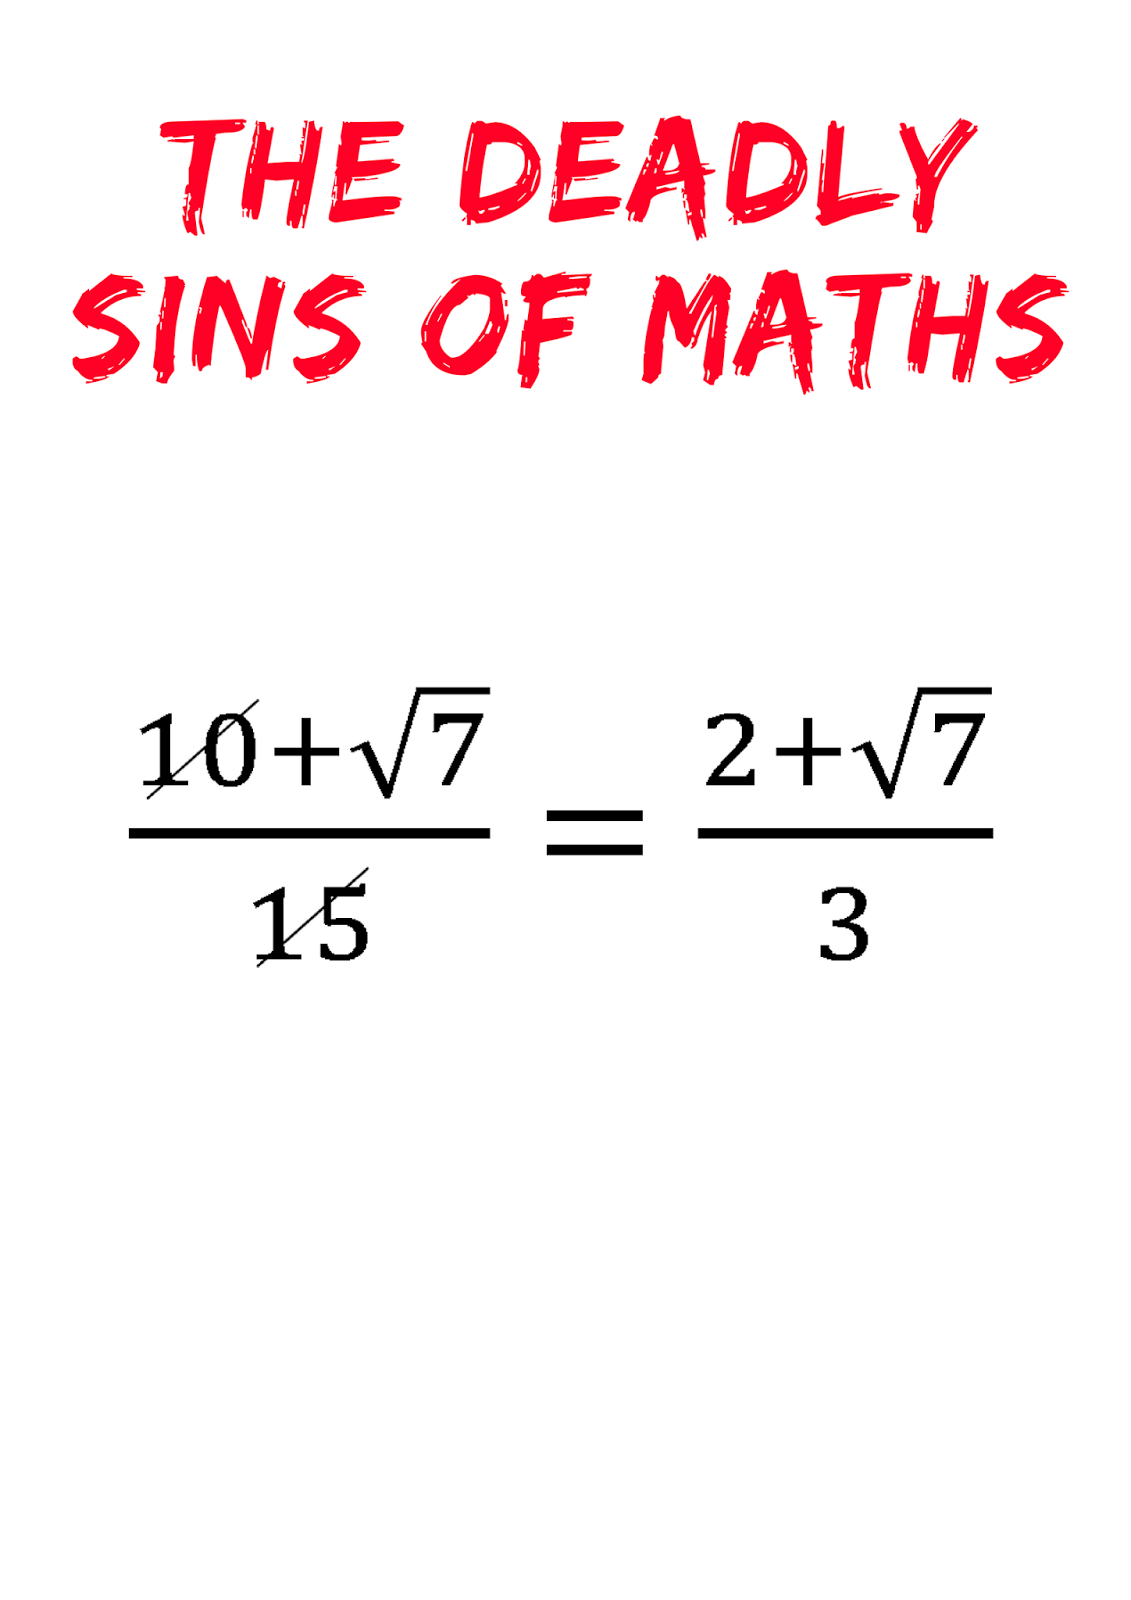 Resourceaholic: The Deadly Sins of Maths